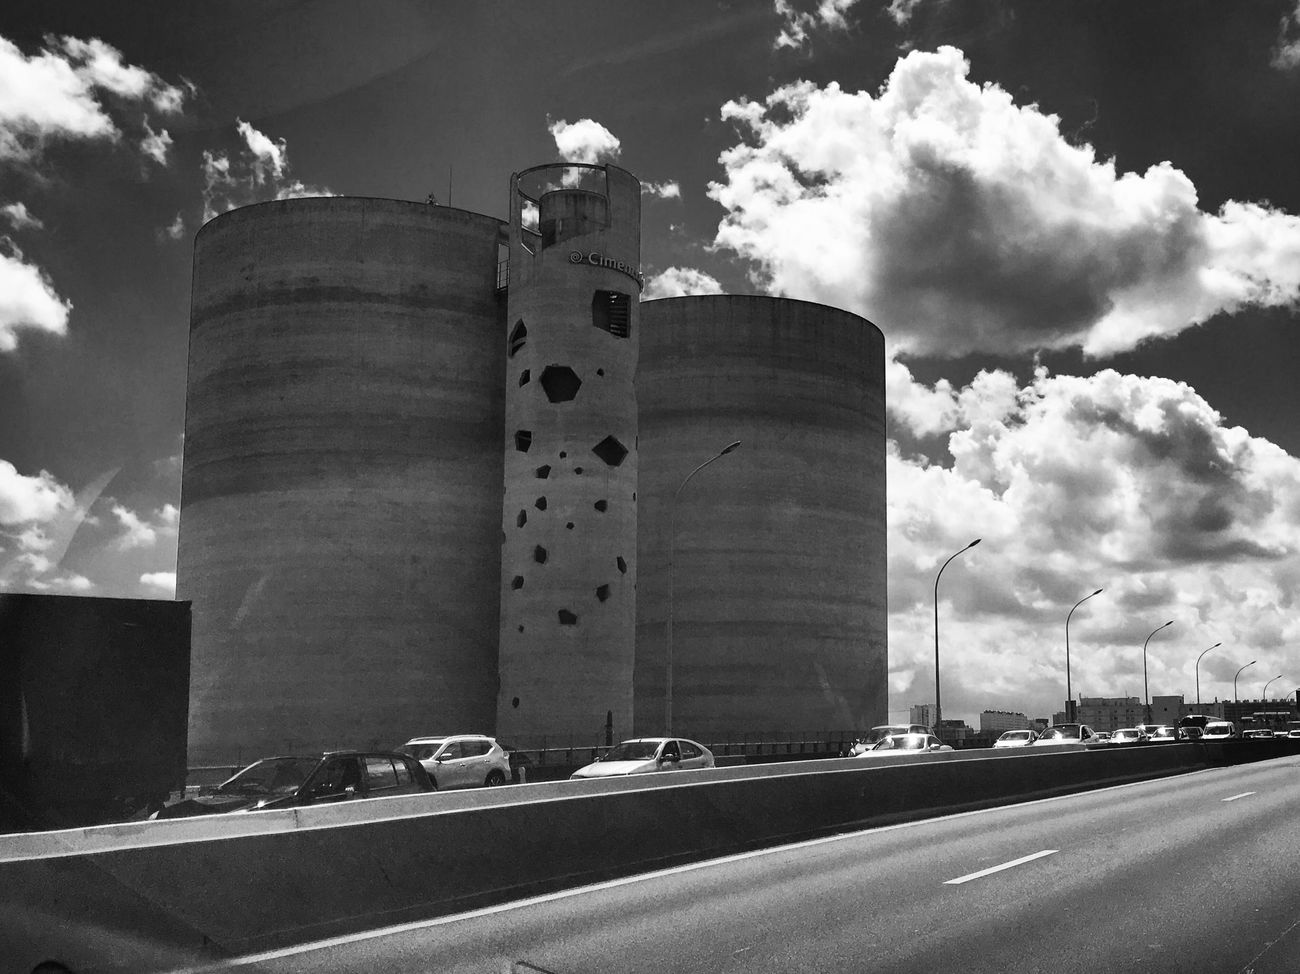 Paris Beltway Motorway On The Road Cementworks Architecture Cars Traffic Beautiful Sky Clouds Sunny Day Light And Shadow Perspective Geometric Shapes Bnw Bnw_captures Bnwphotography Blackandwhite Photography Blackandwhite EyeEm Best Shots - Black + White From My Point Of View Eye4photography  EyeEm Best Shots EyeEm Gallery Taking Photos